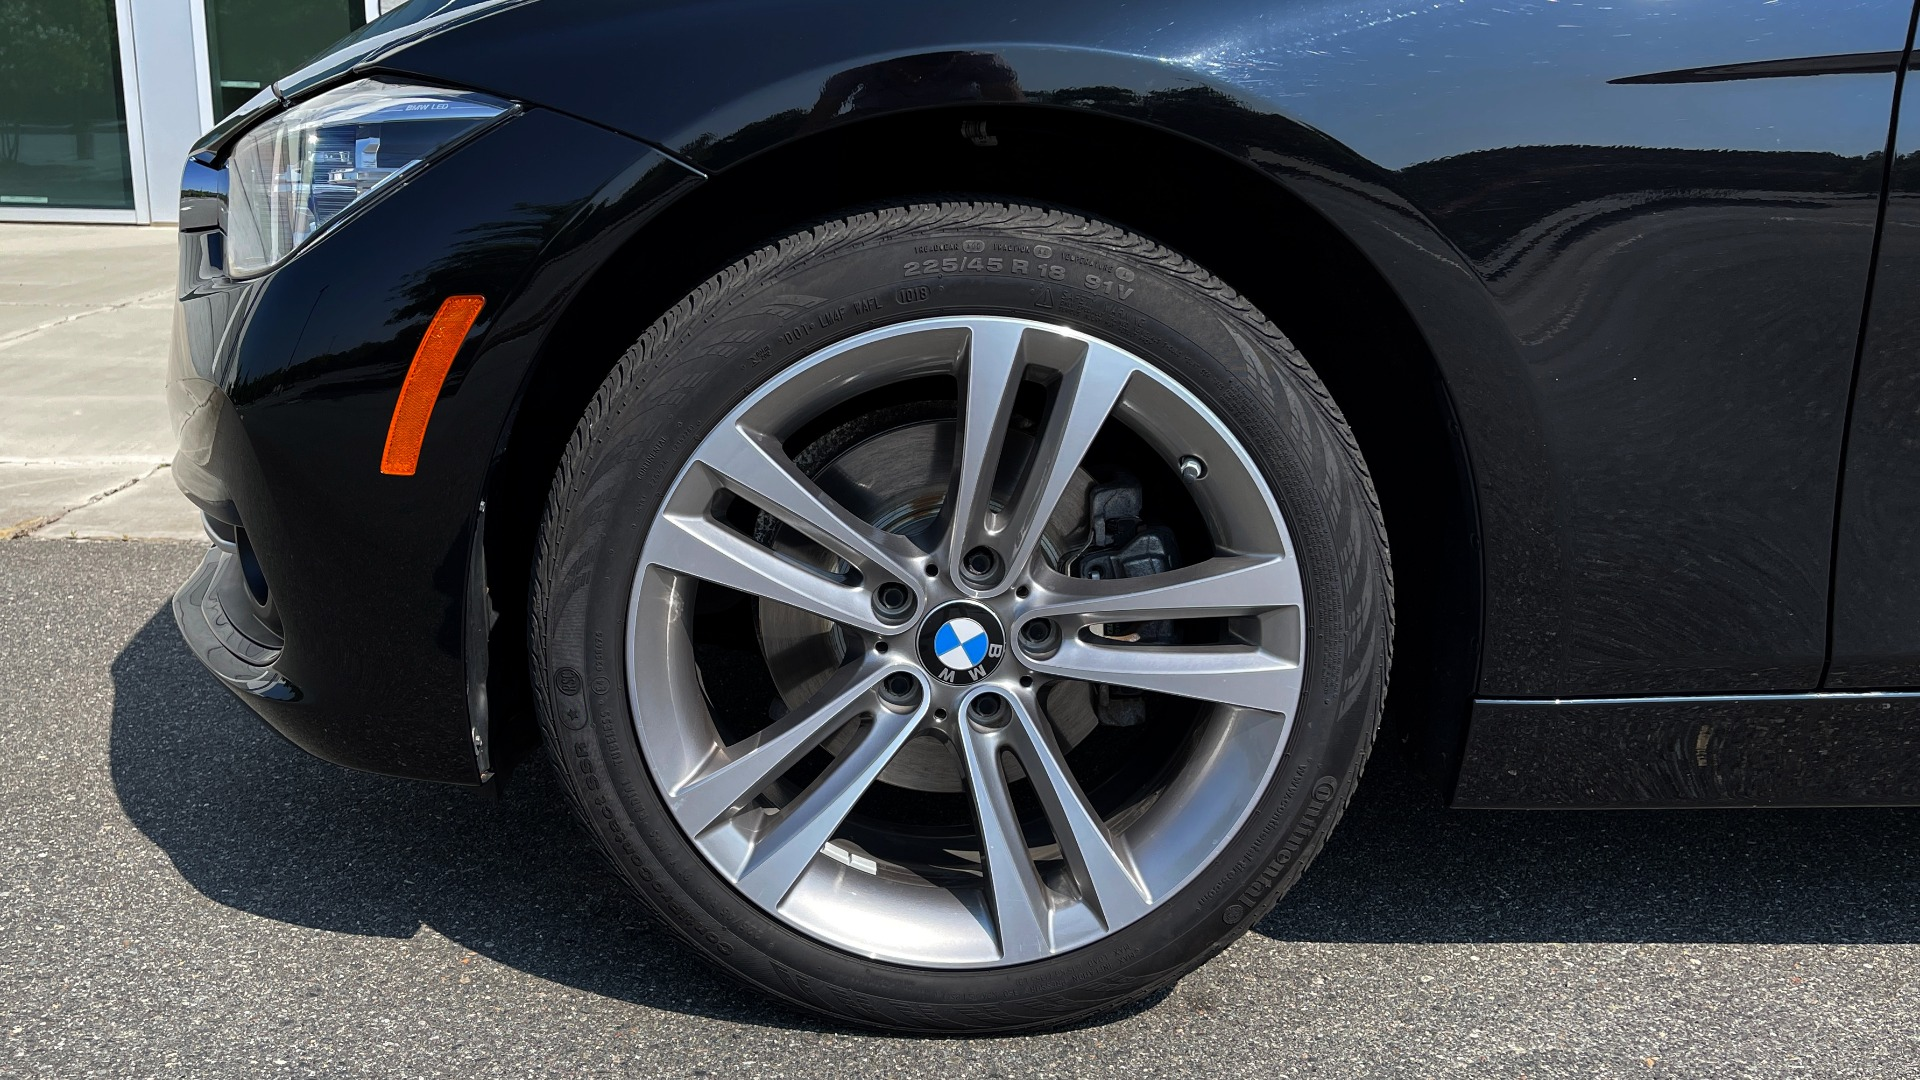 Used 2018 BMW 3 SERIES 330I XDRIVE / CONV PKG / SUNROOF / HTD STS / ABSD / REARVIEW for sale $30,695 at Formula Imports in Charlotte NC 28227 71